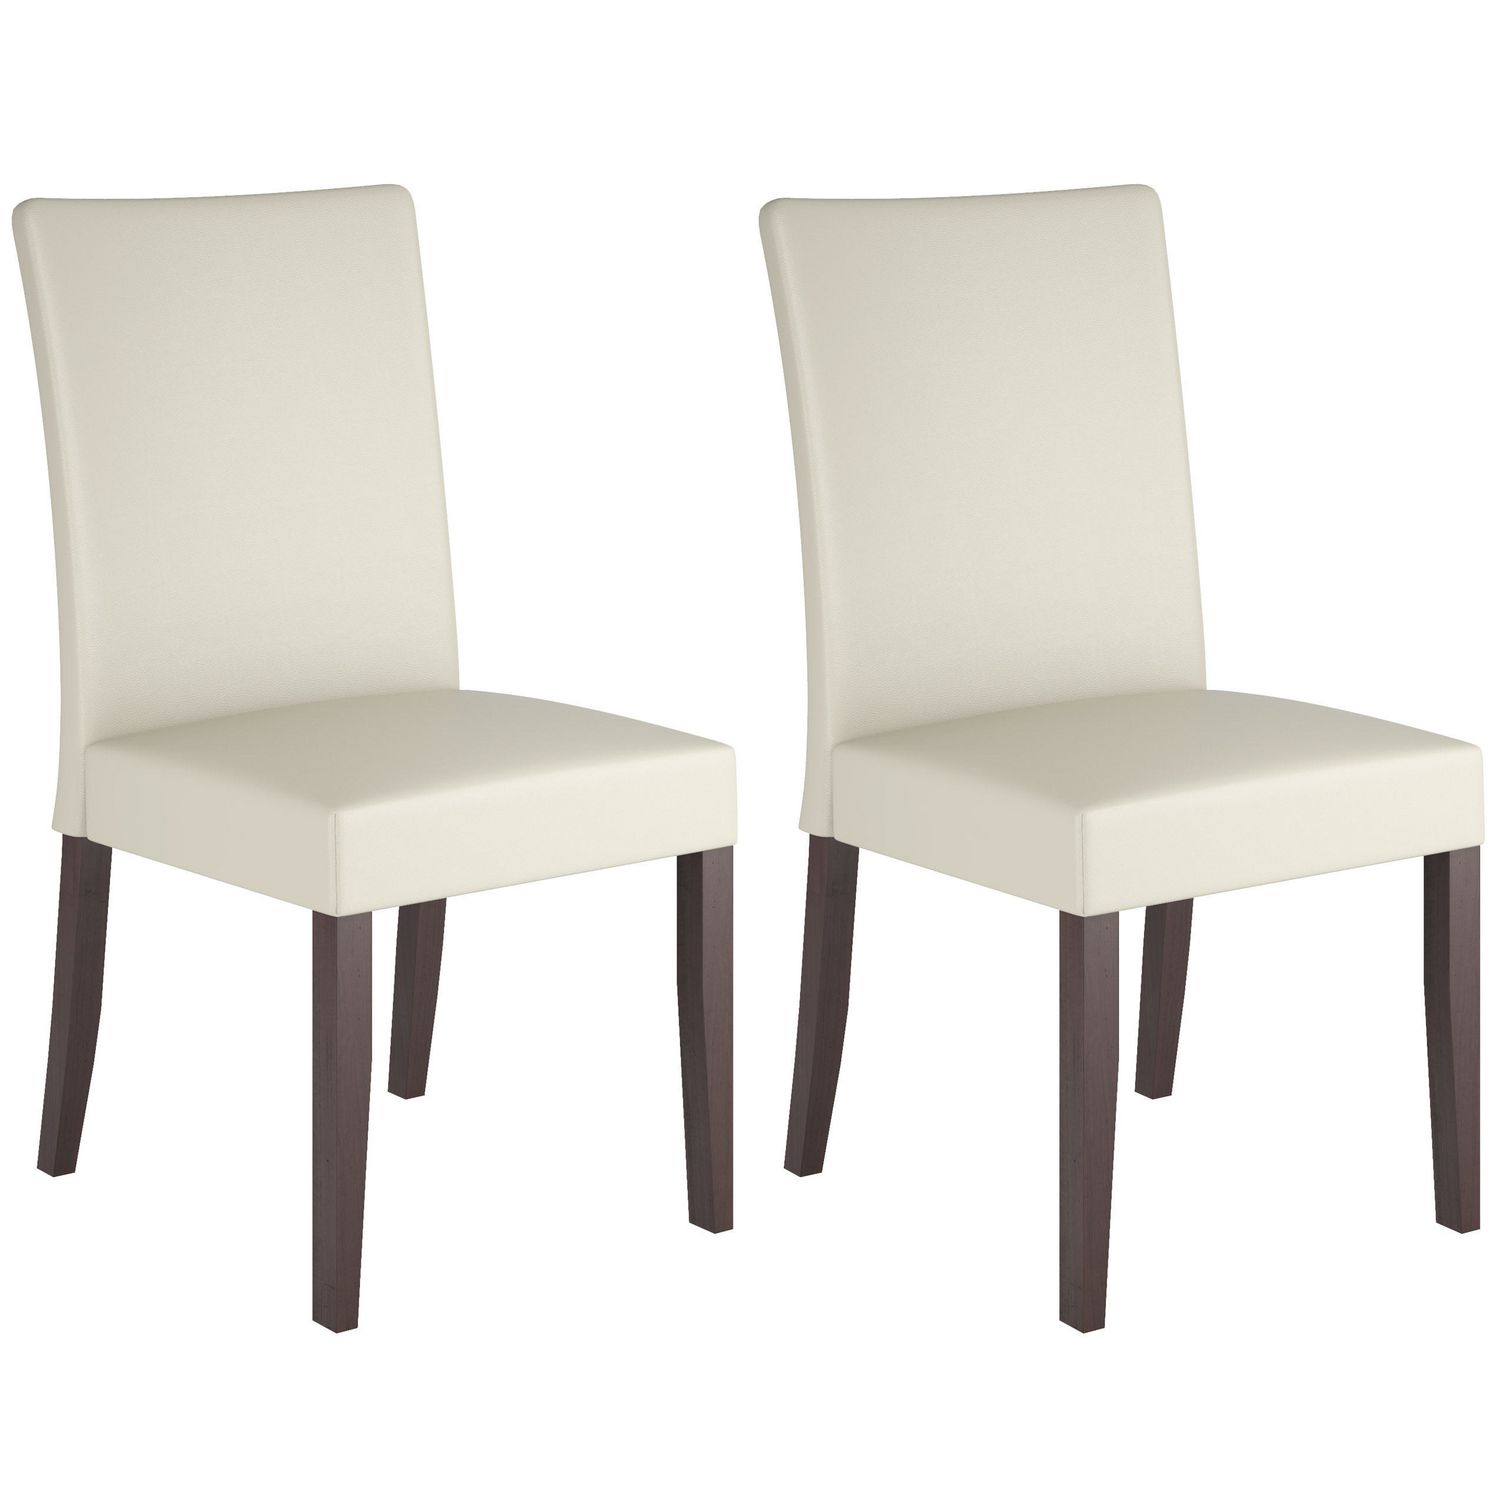 CorLiving Cream Leatherette Dining Chairs, Set of 6  Walmart Canada